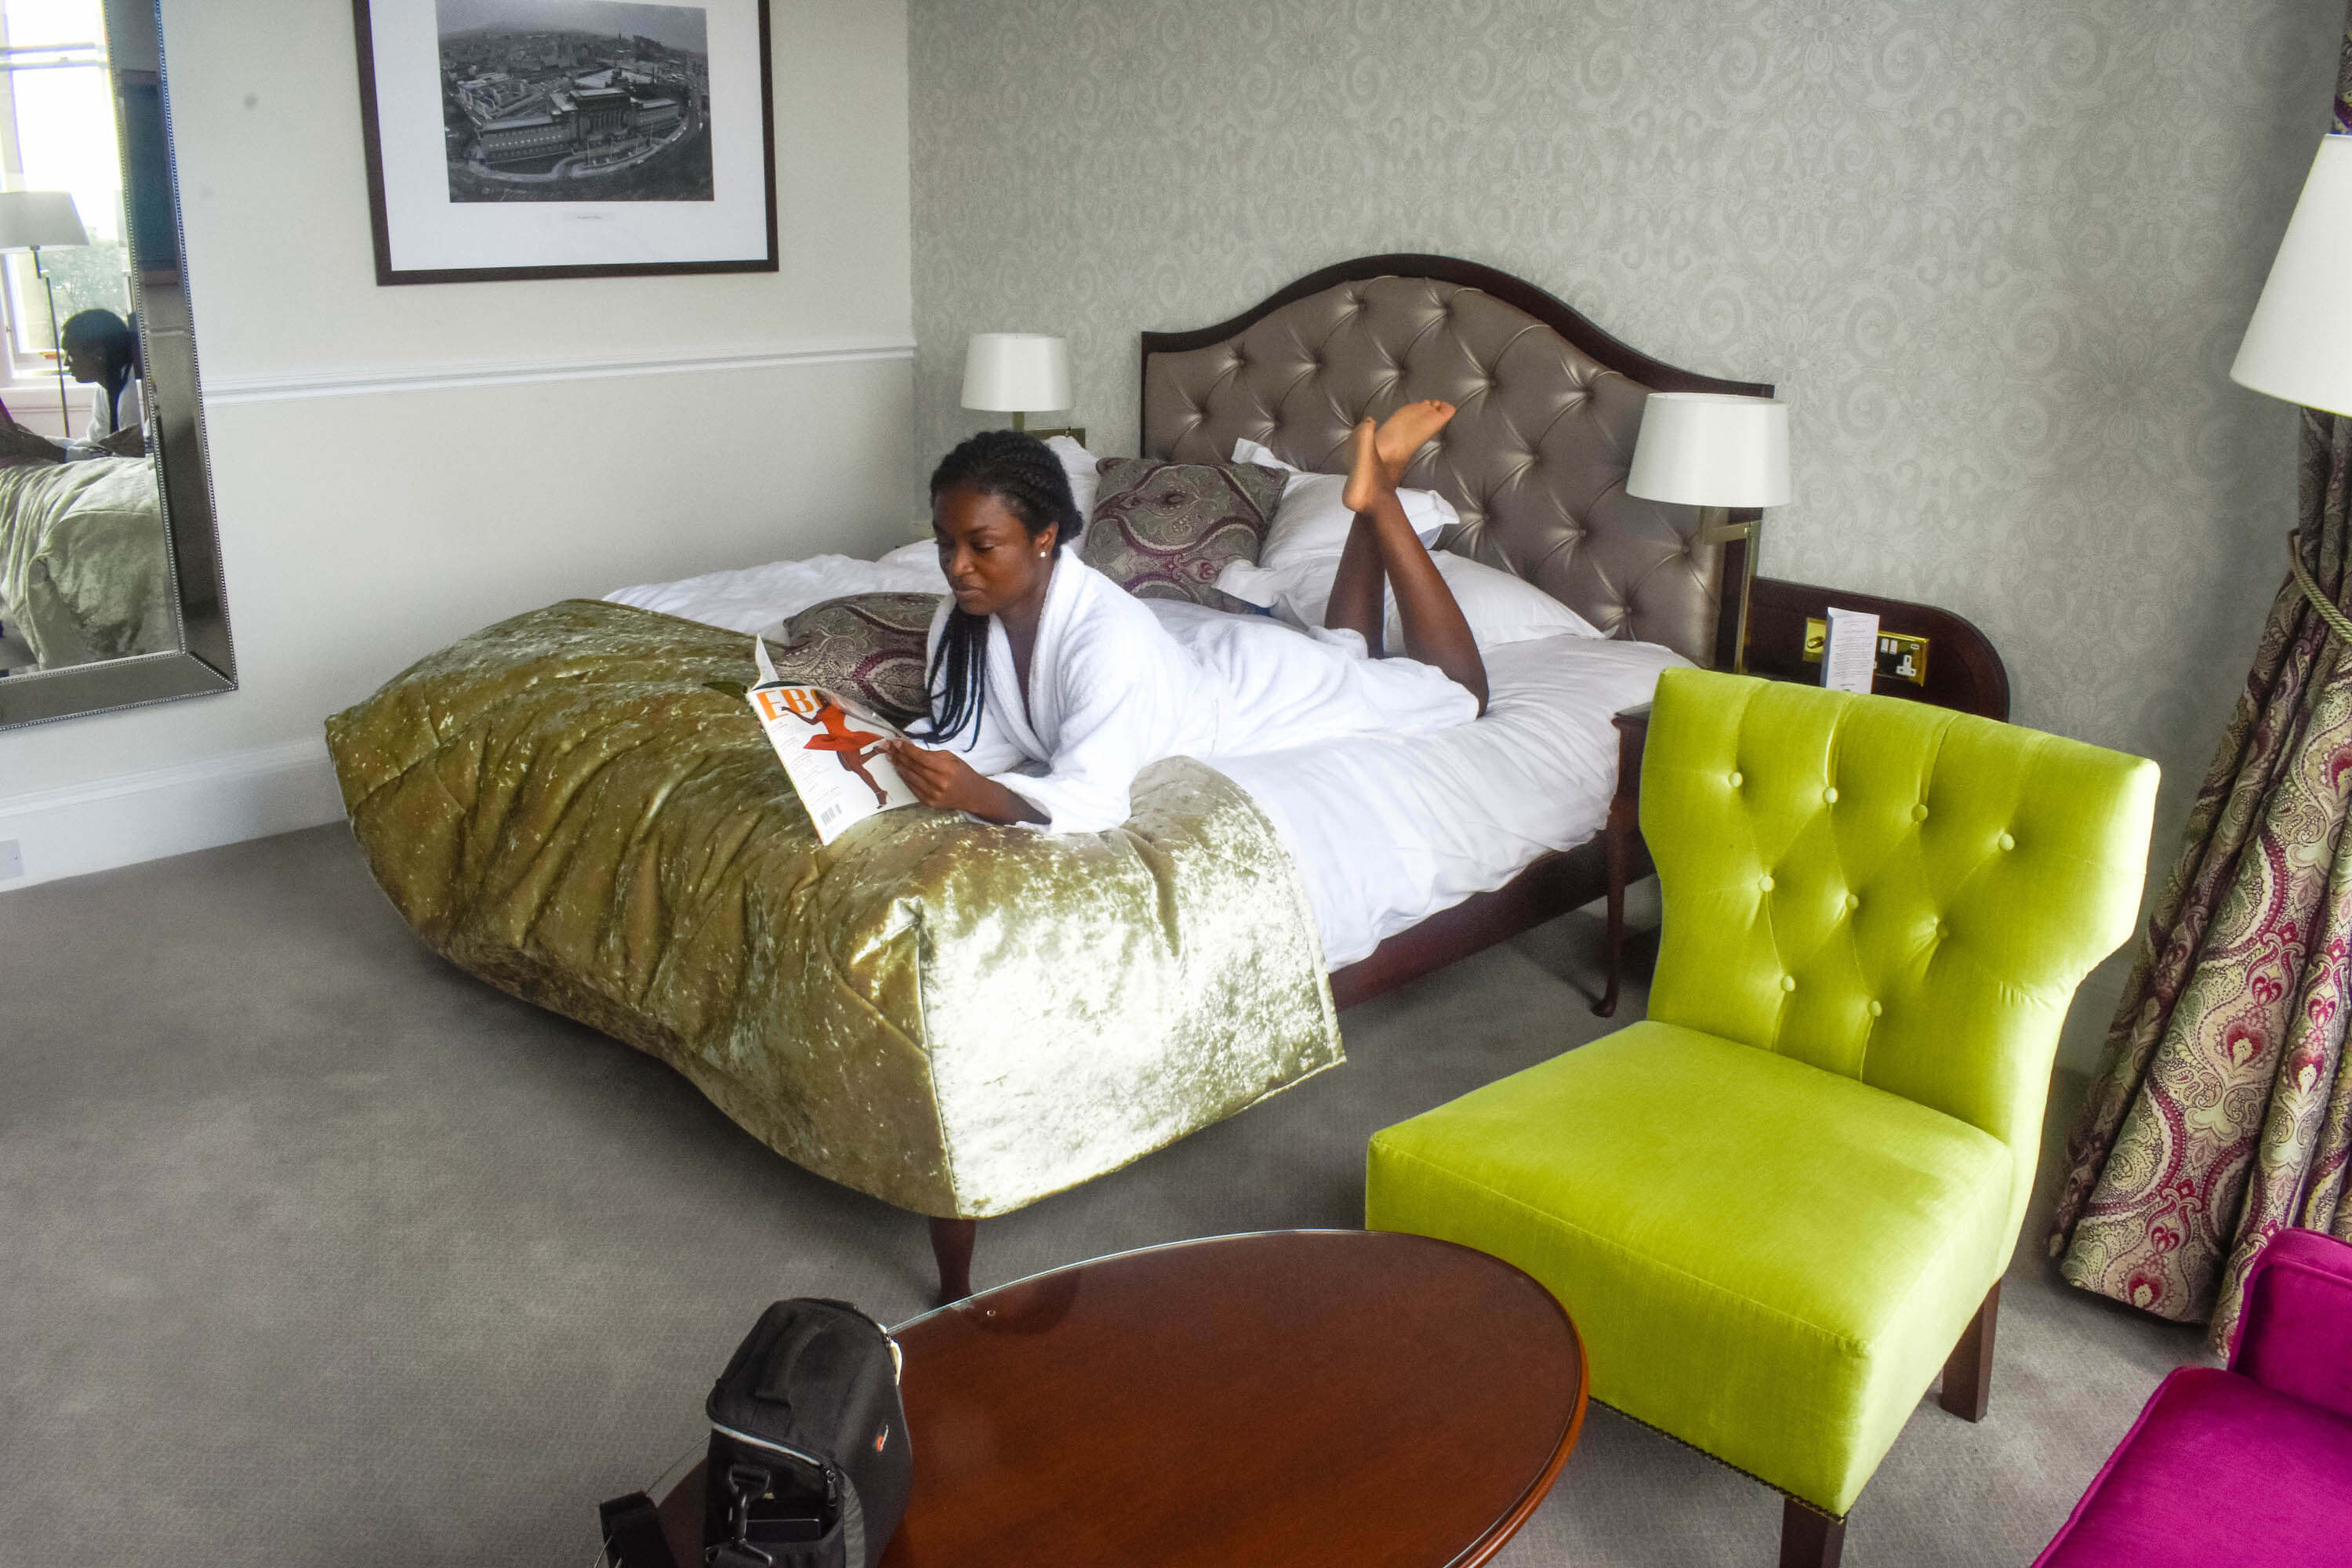 The Bonham Hotel Review - Lying on the Bed Side View